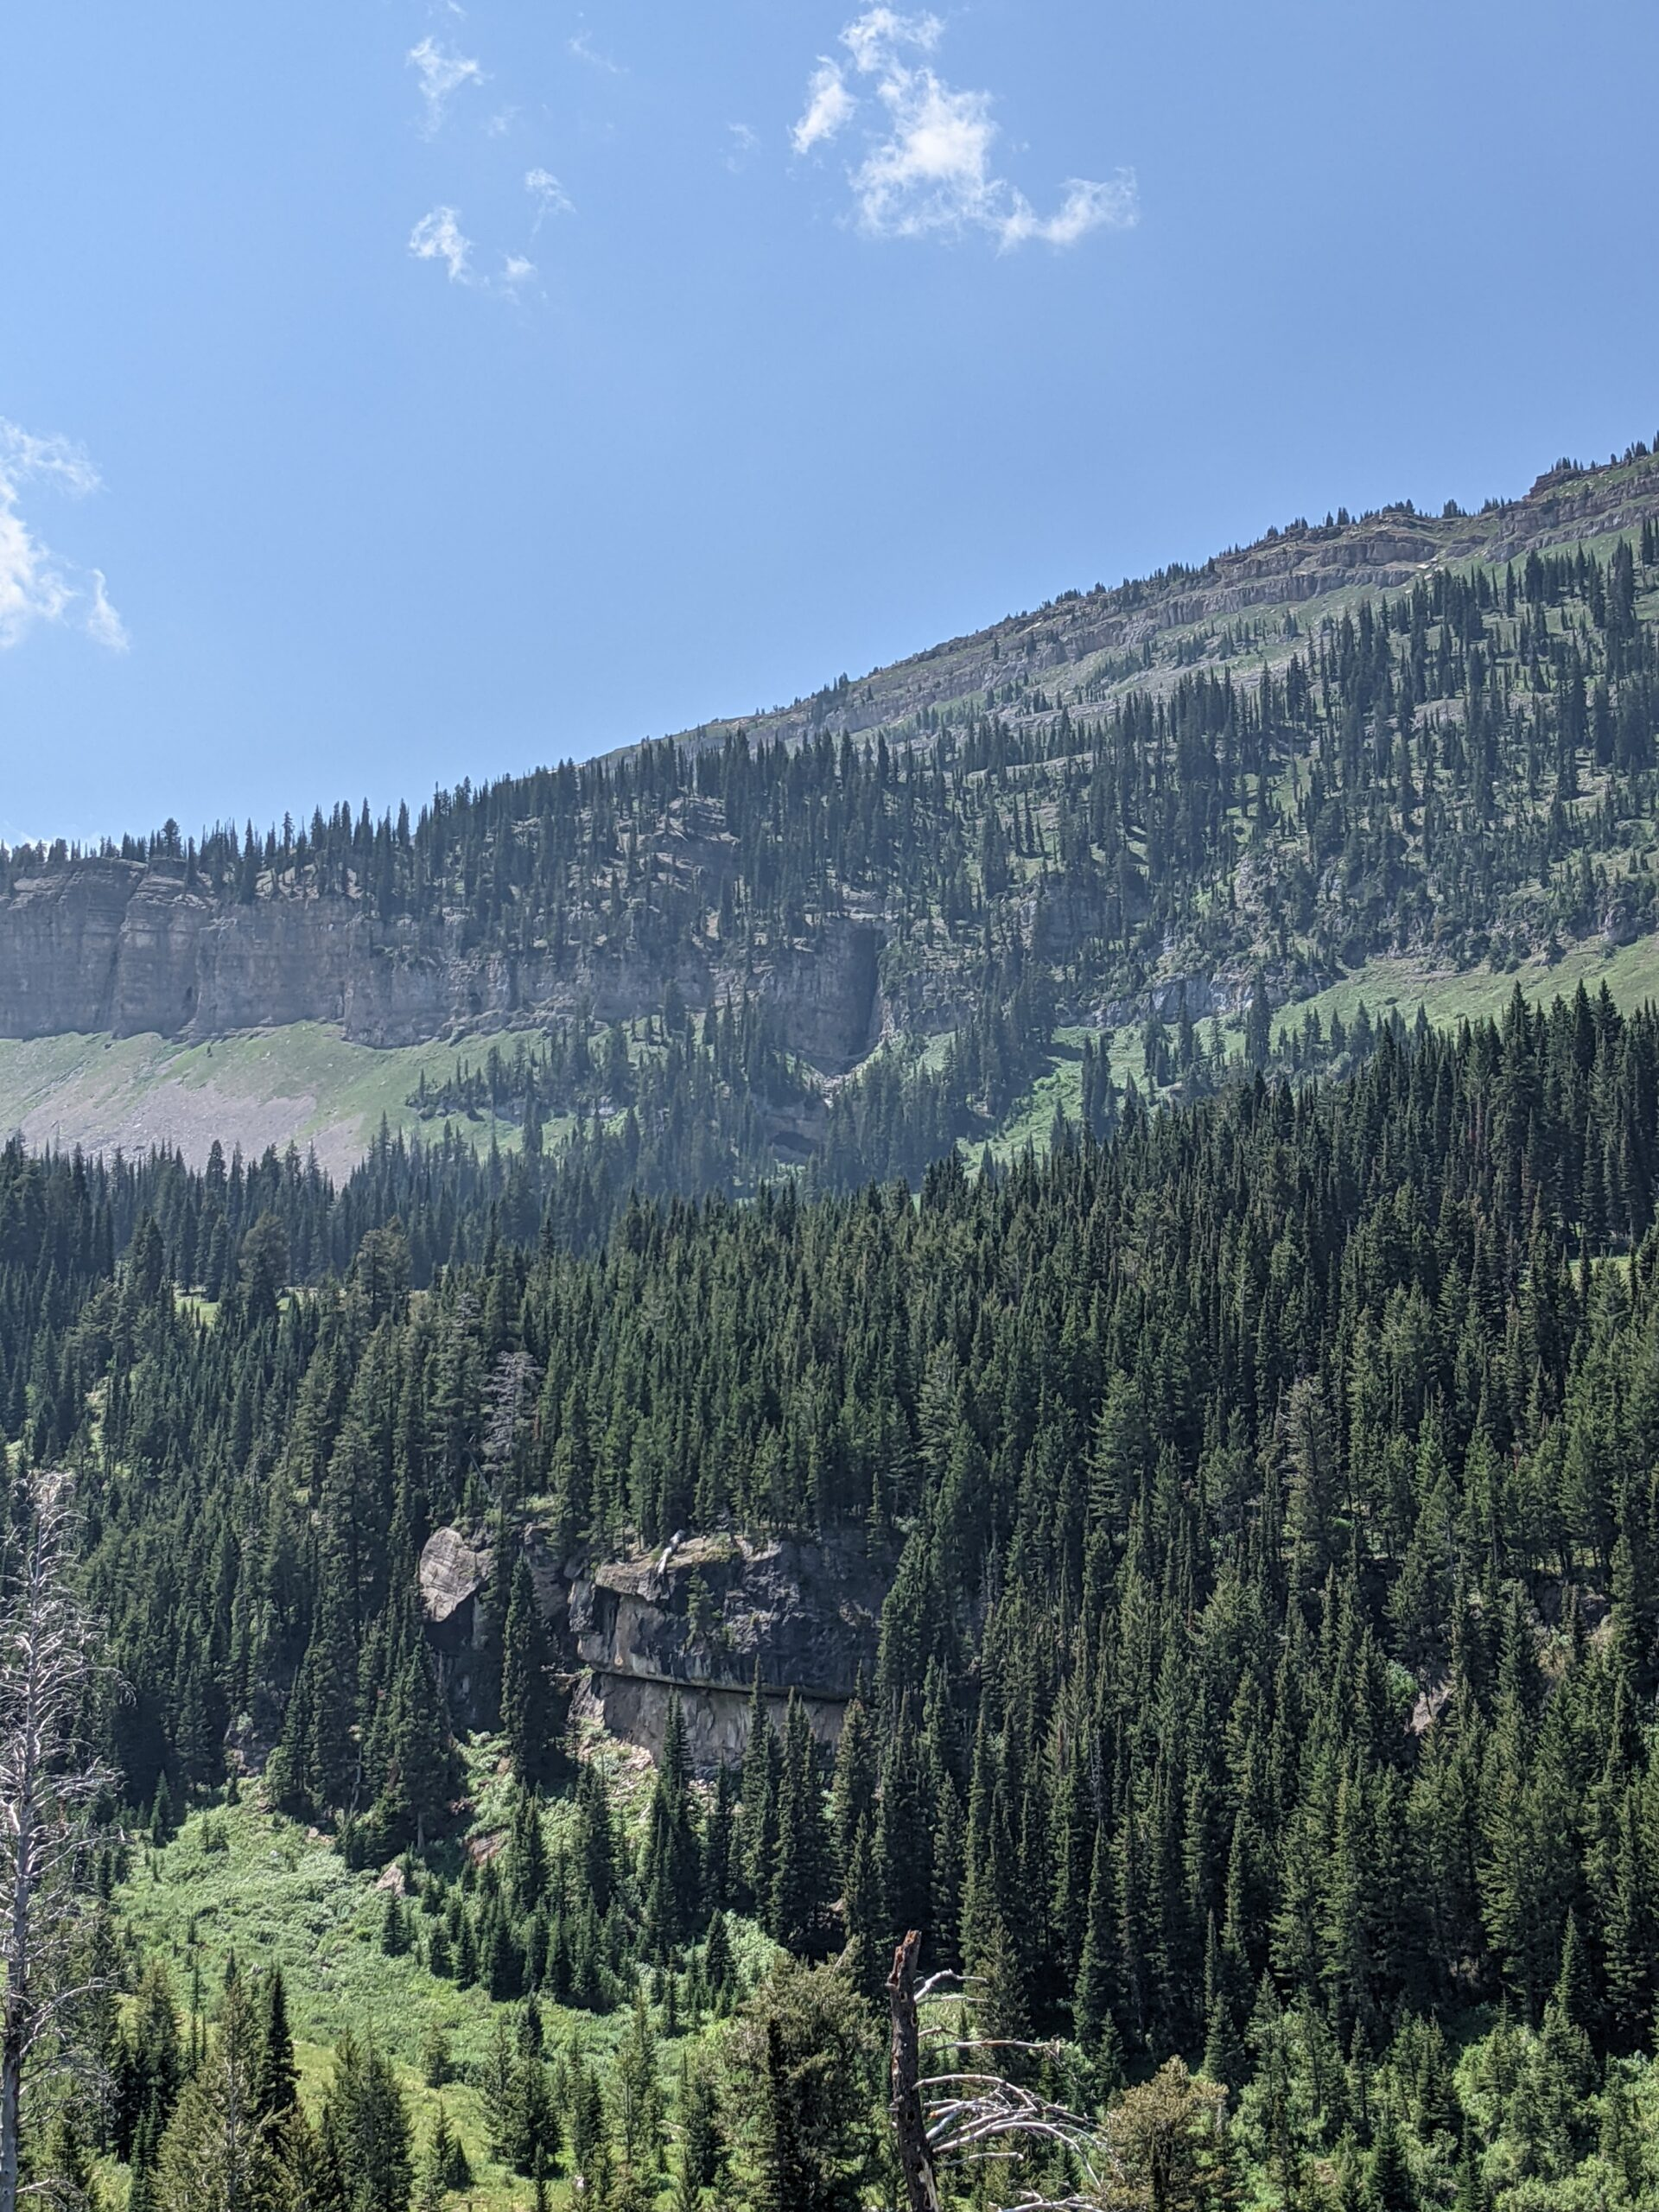 Darby Canyon